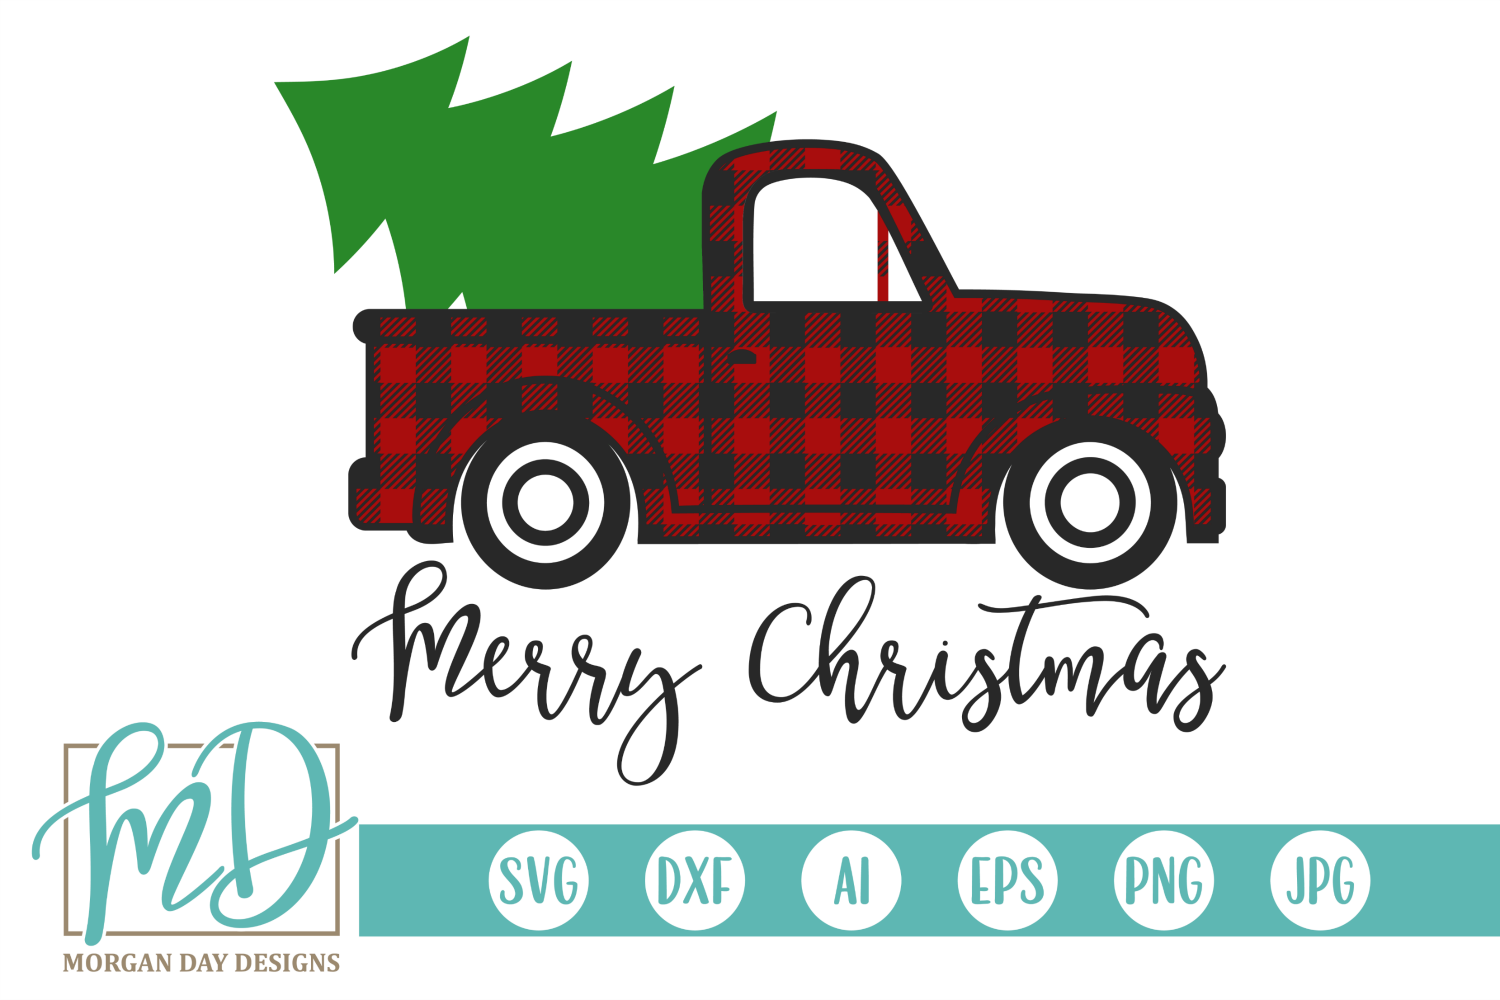 Download Free Buffalo Plaid Merry Christmas Truck Graphic By Morgan Day for Cricut Explore, Silhouette and other cutting machines.